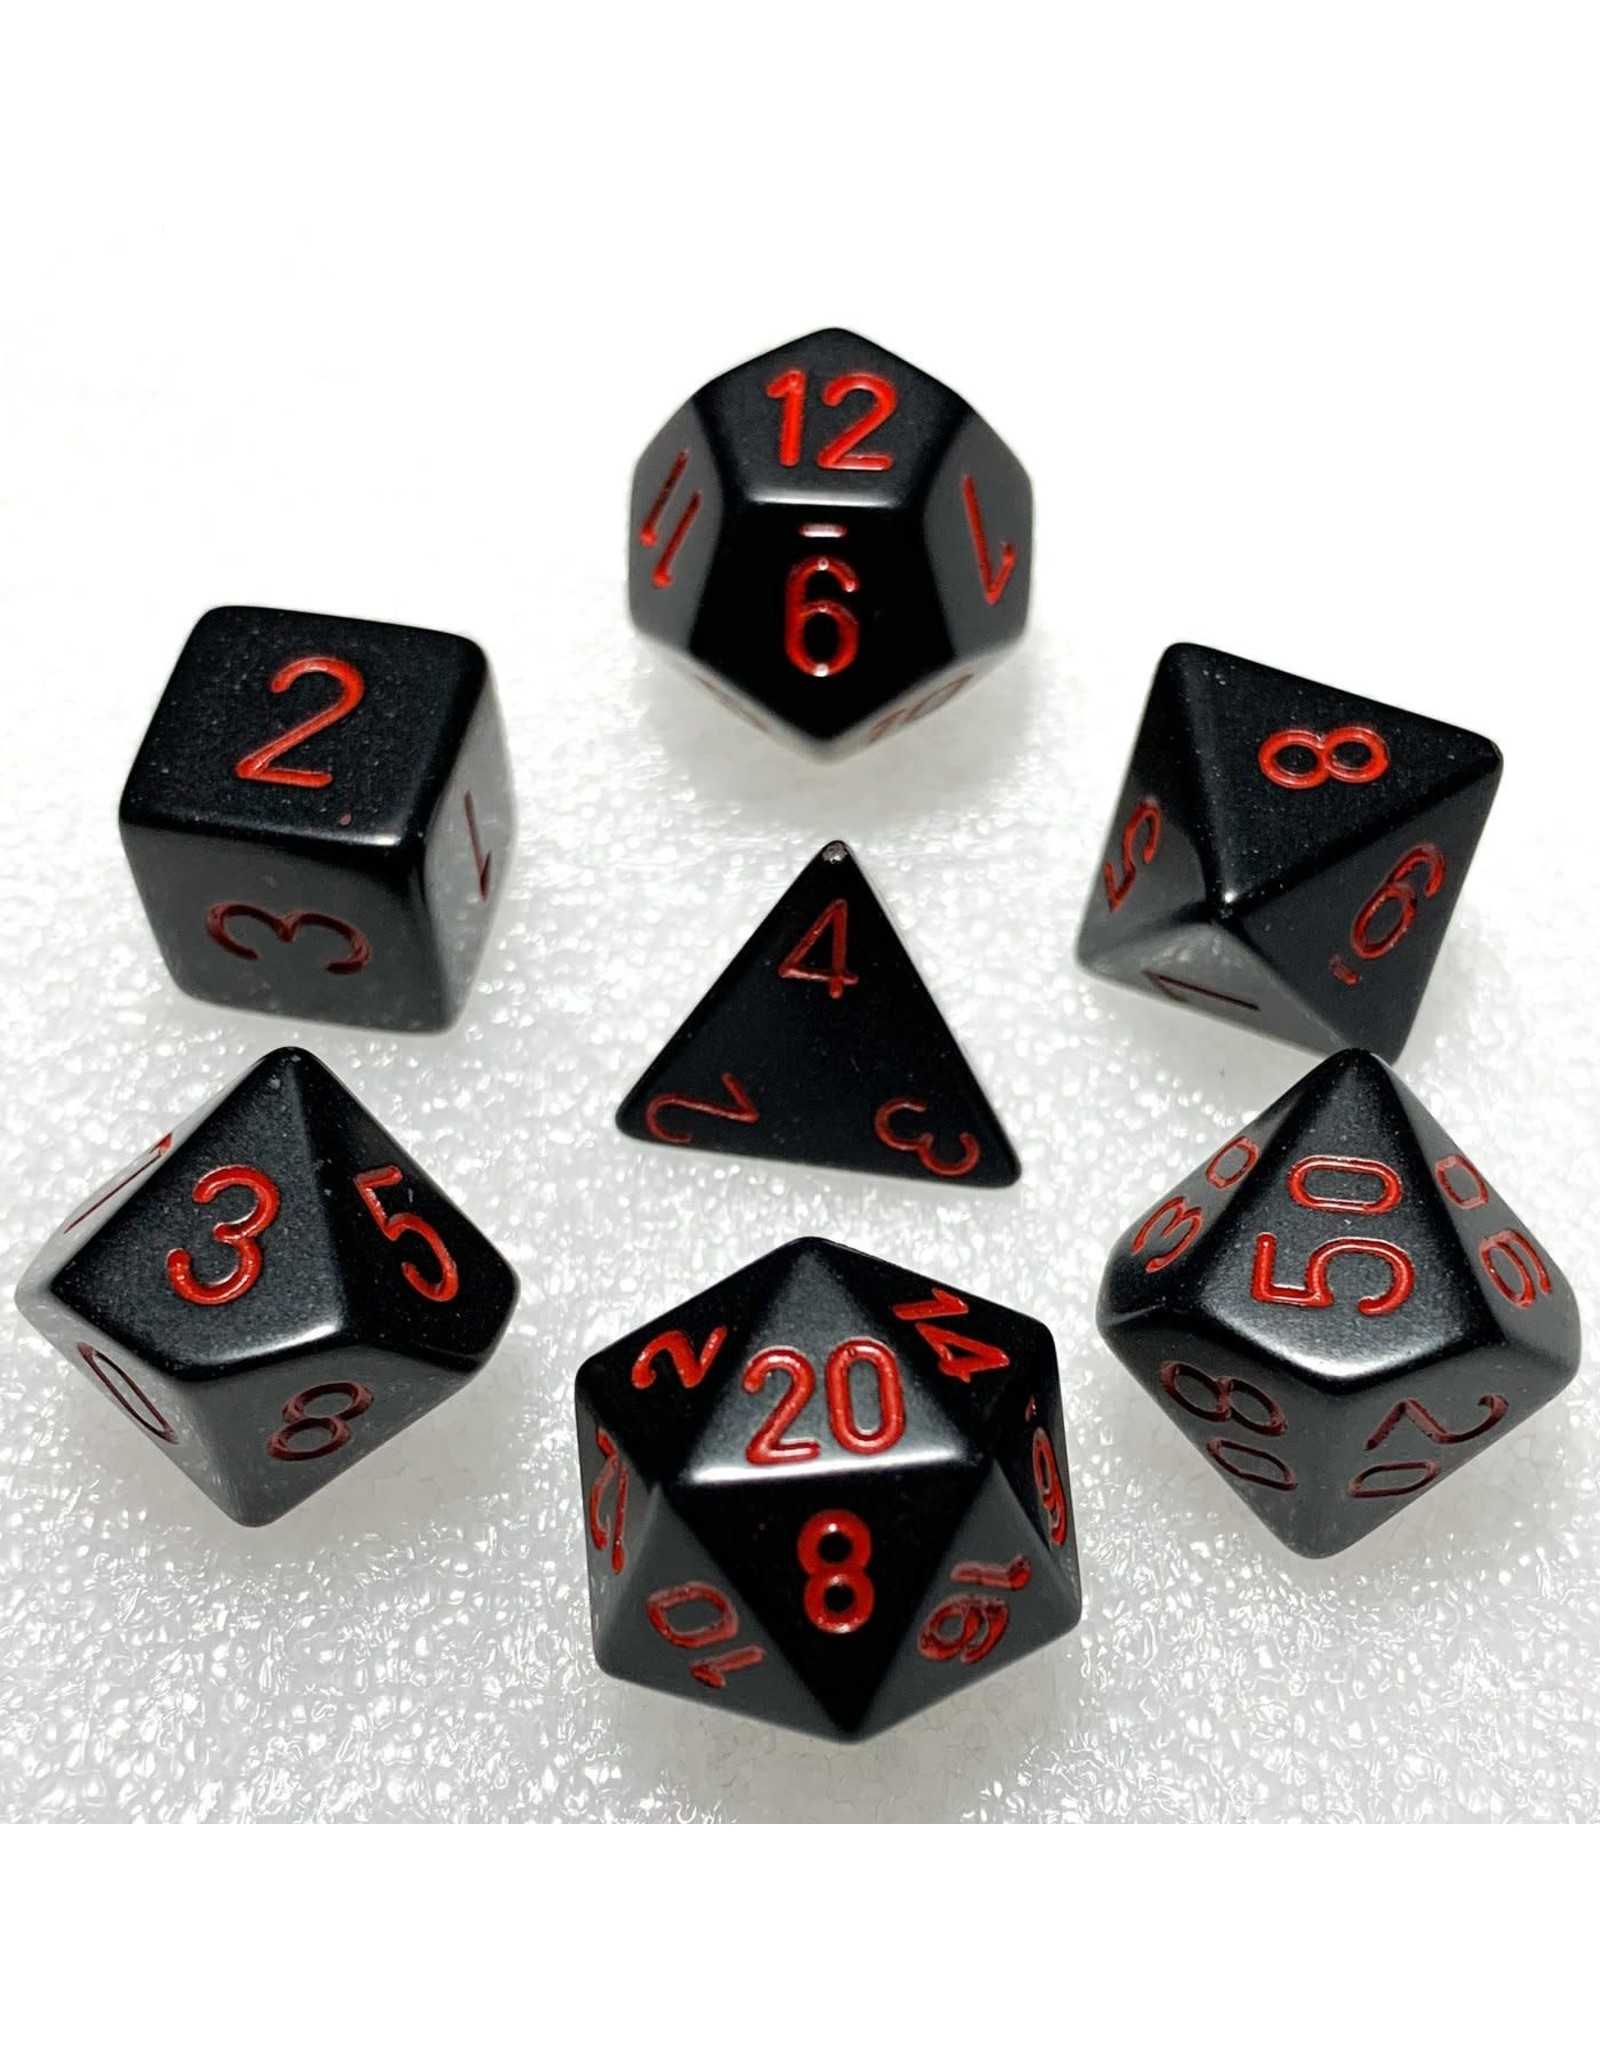 Chessex Chessex Opaque (7pc Set) Black/Red